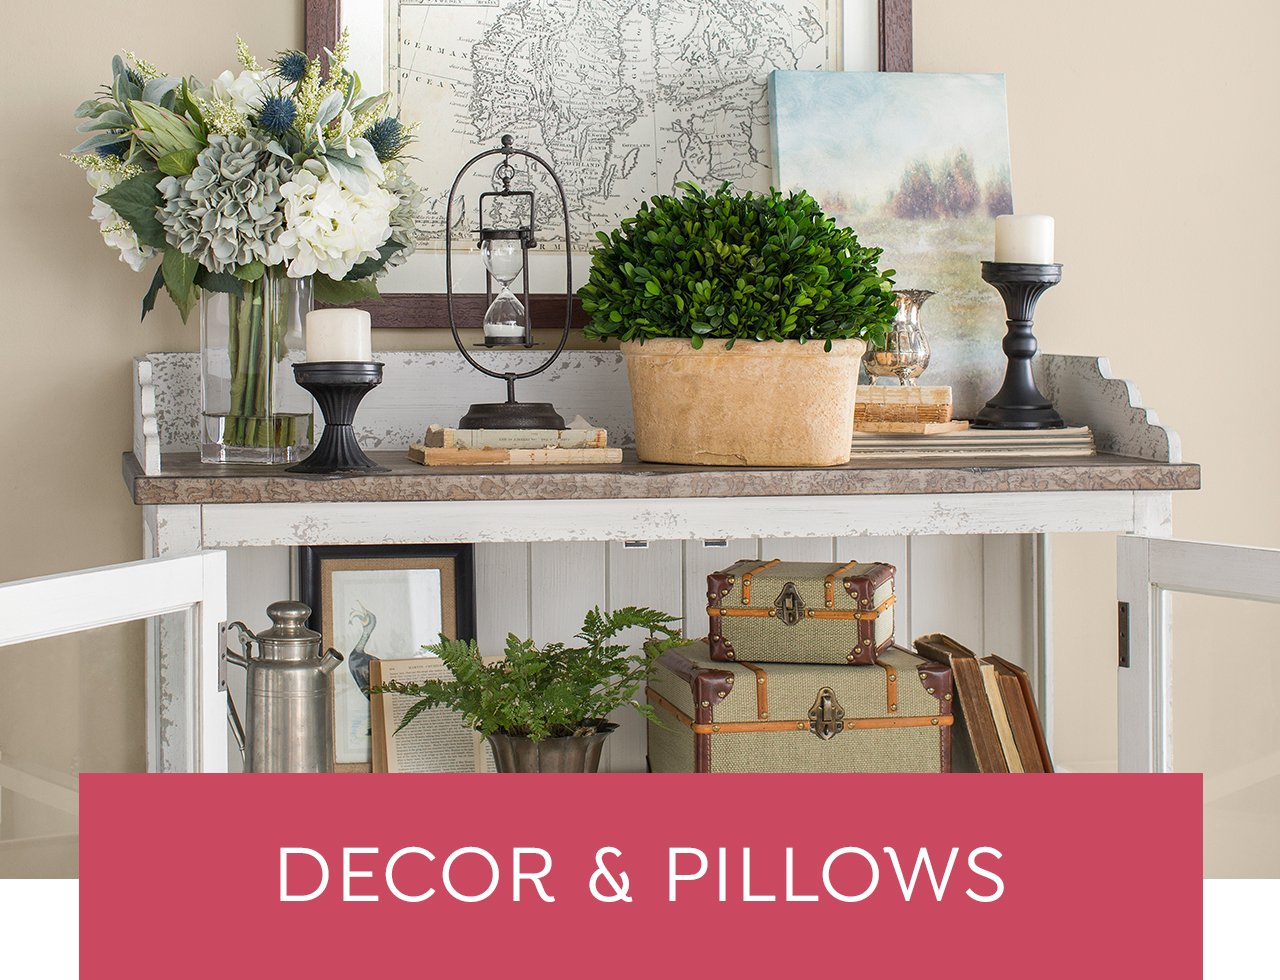 Decor & Pillows